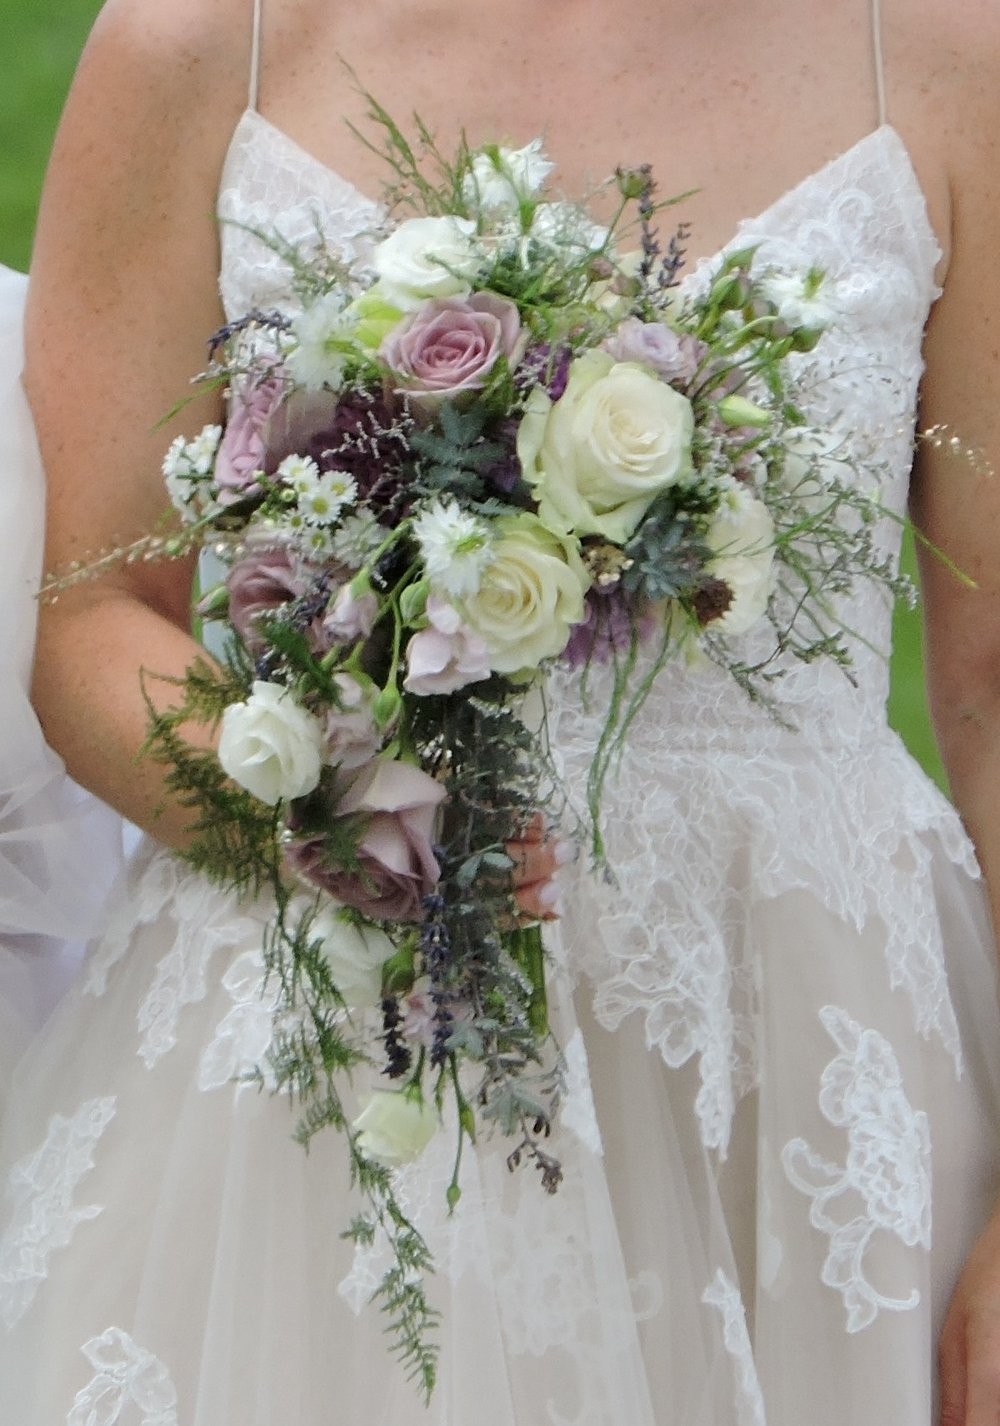 Romantic, cascade bouquet with fine textures evoking feelings of lace